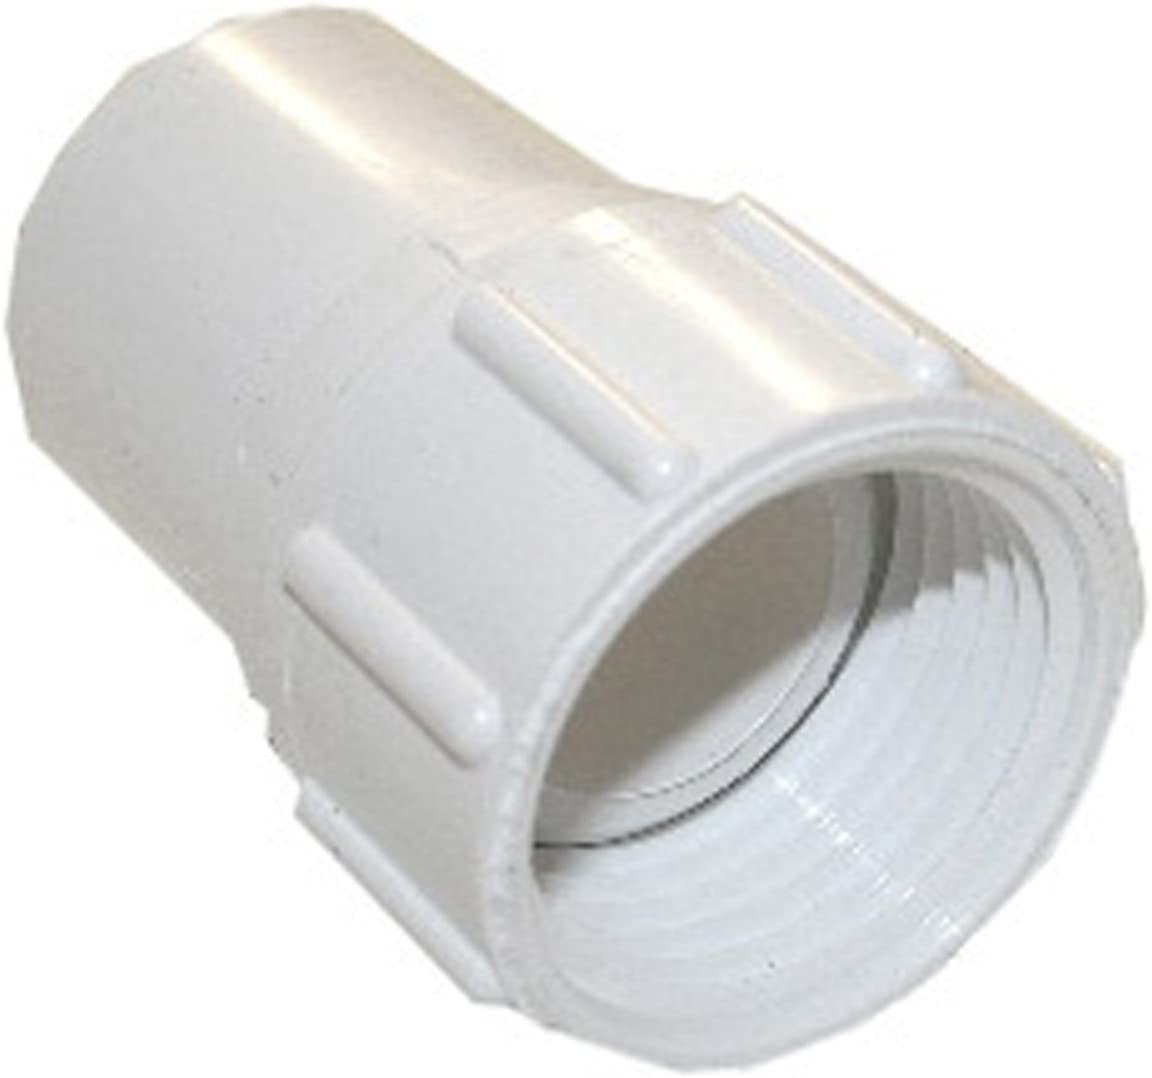 LASCO 15-1621 PVC Hose Adapter with 3/4-Inch Female Hose and 1/2-Inch PVC Pipe Glue Connection